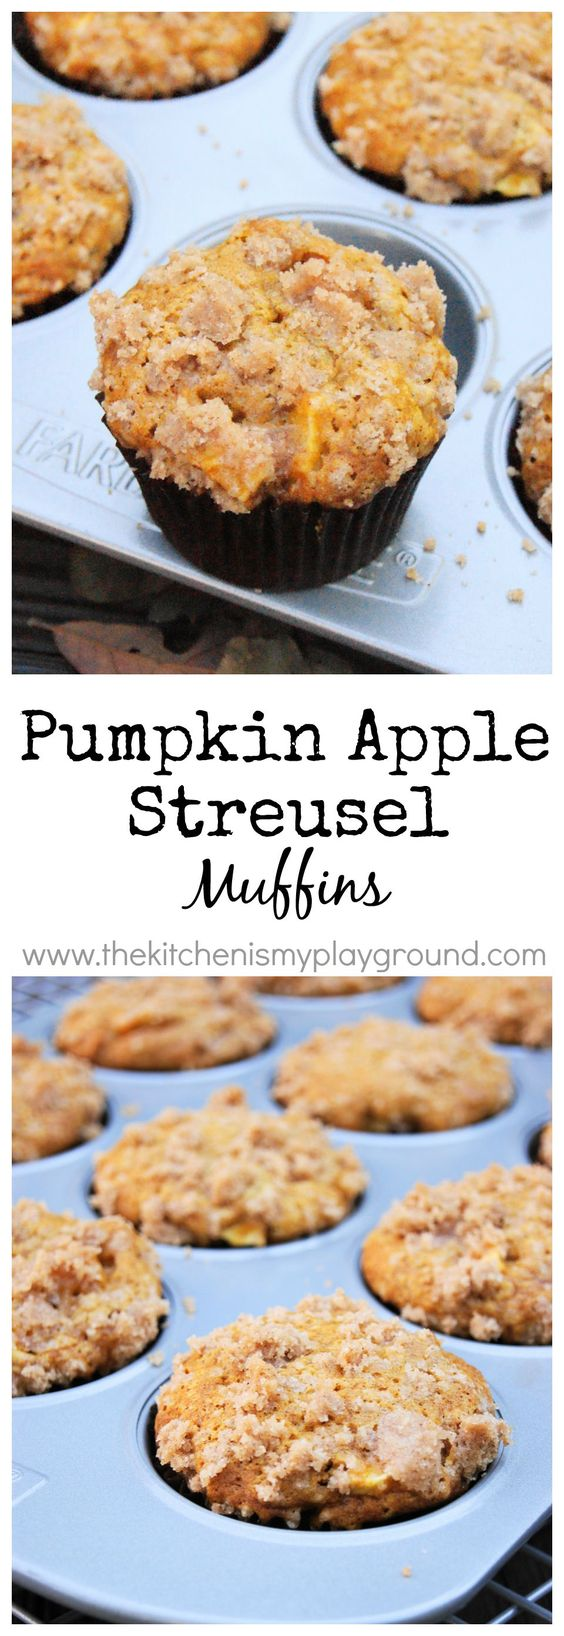 Pumpkin Apple Streusel Muffins ... 2 fall flavors are perfect together ...